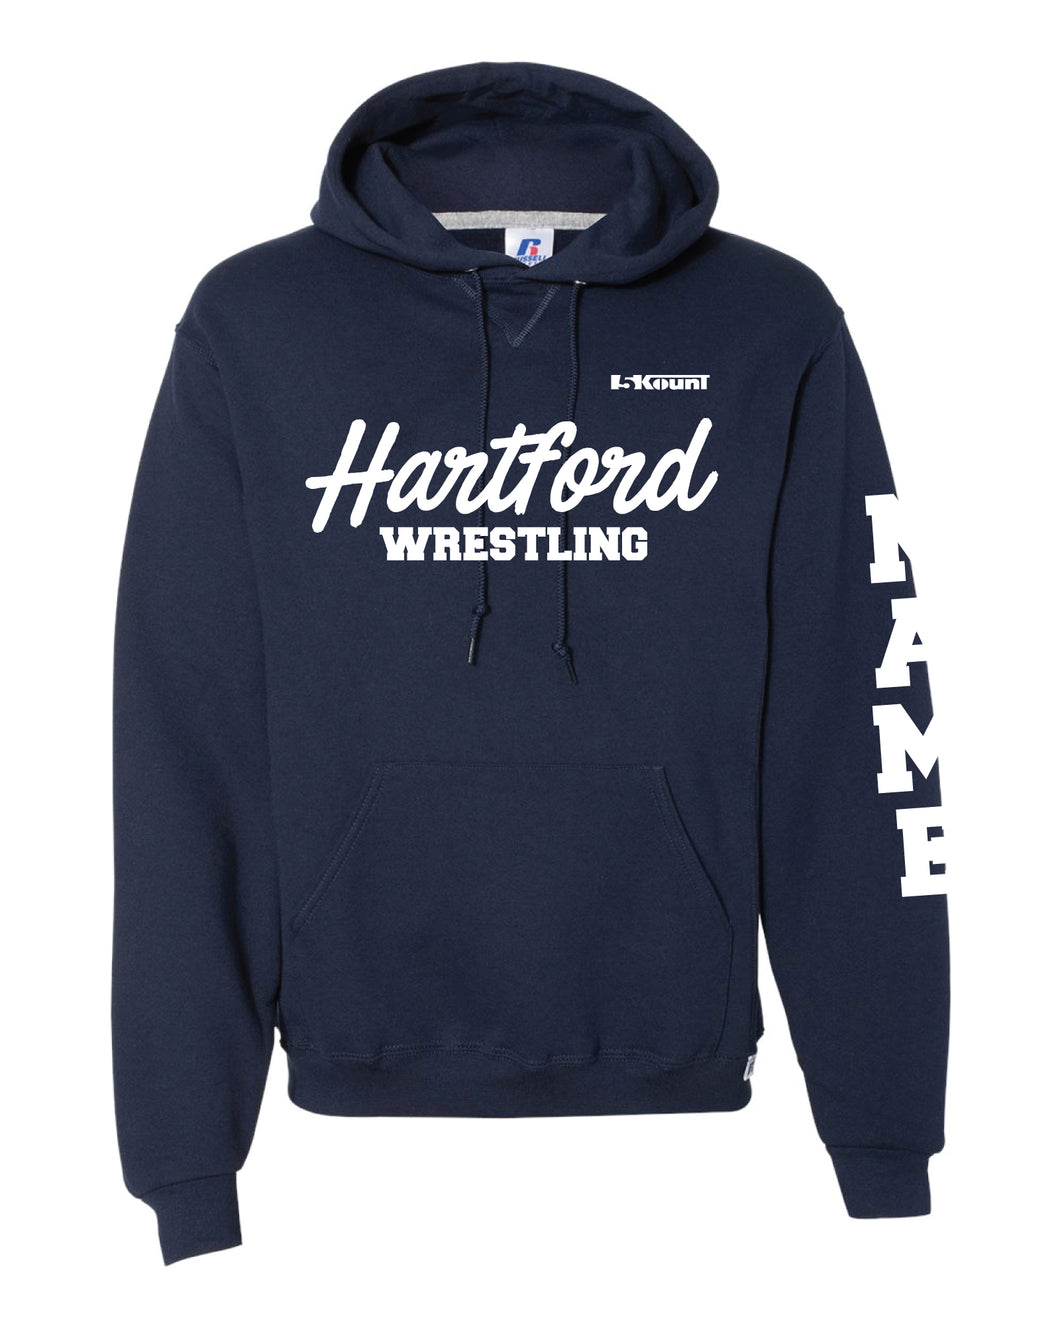 Hartford Owls Wrestling Russell Athletic Cotton Hoodie - Navy - 5KounT2018